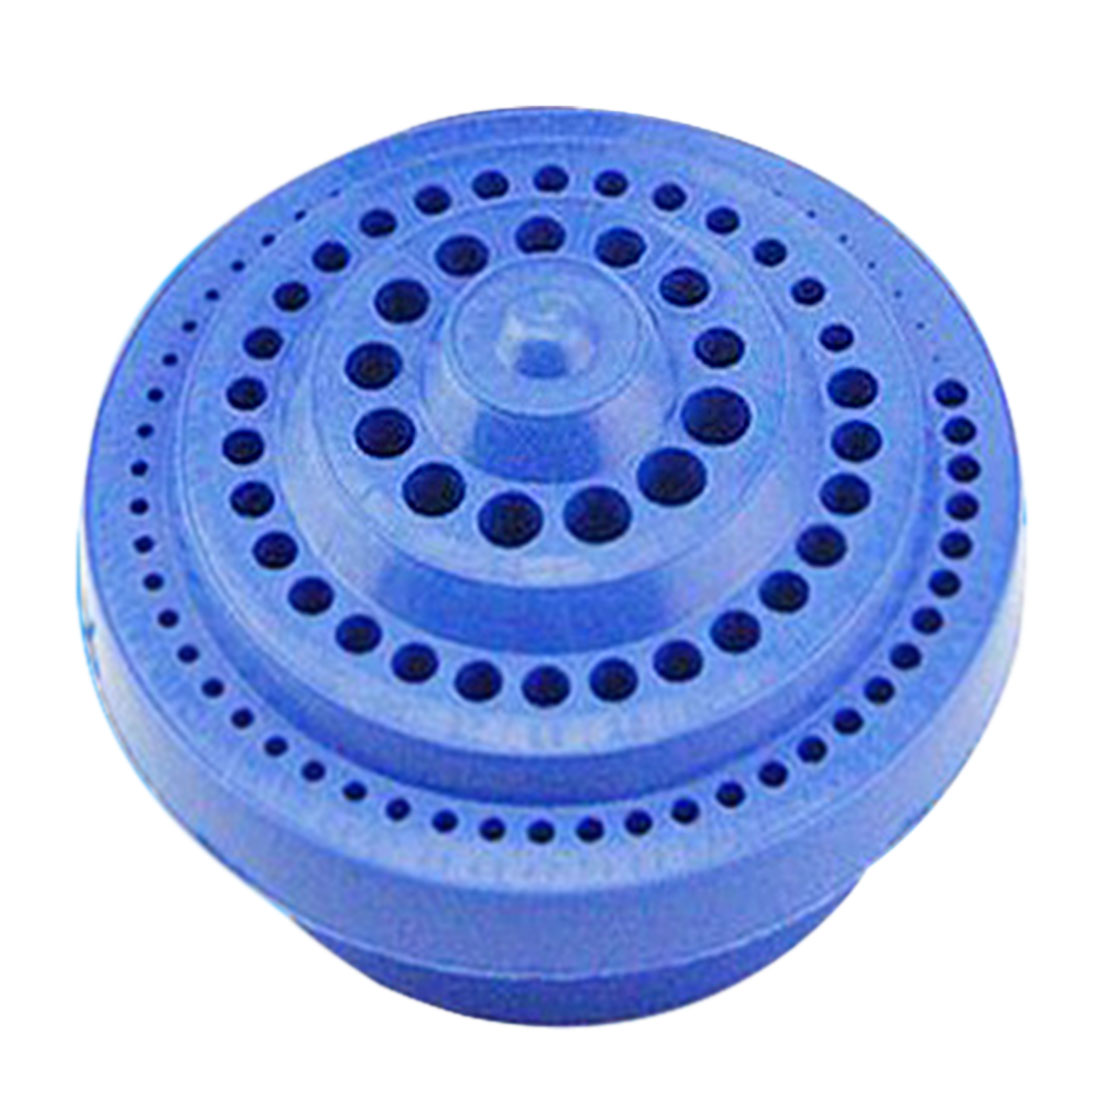 1pcs Round Shape Plastic Hard 100pcs 1-13mm Drill Bit Storage Case Blue